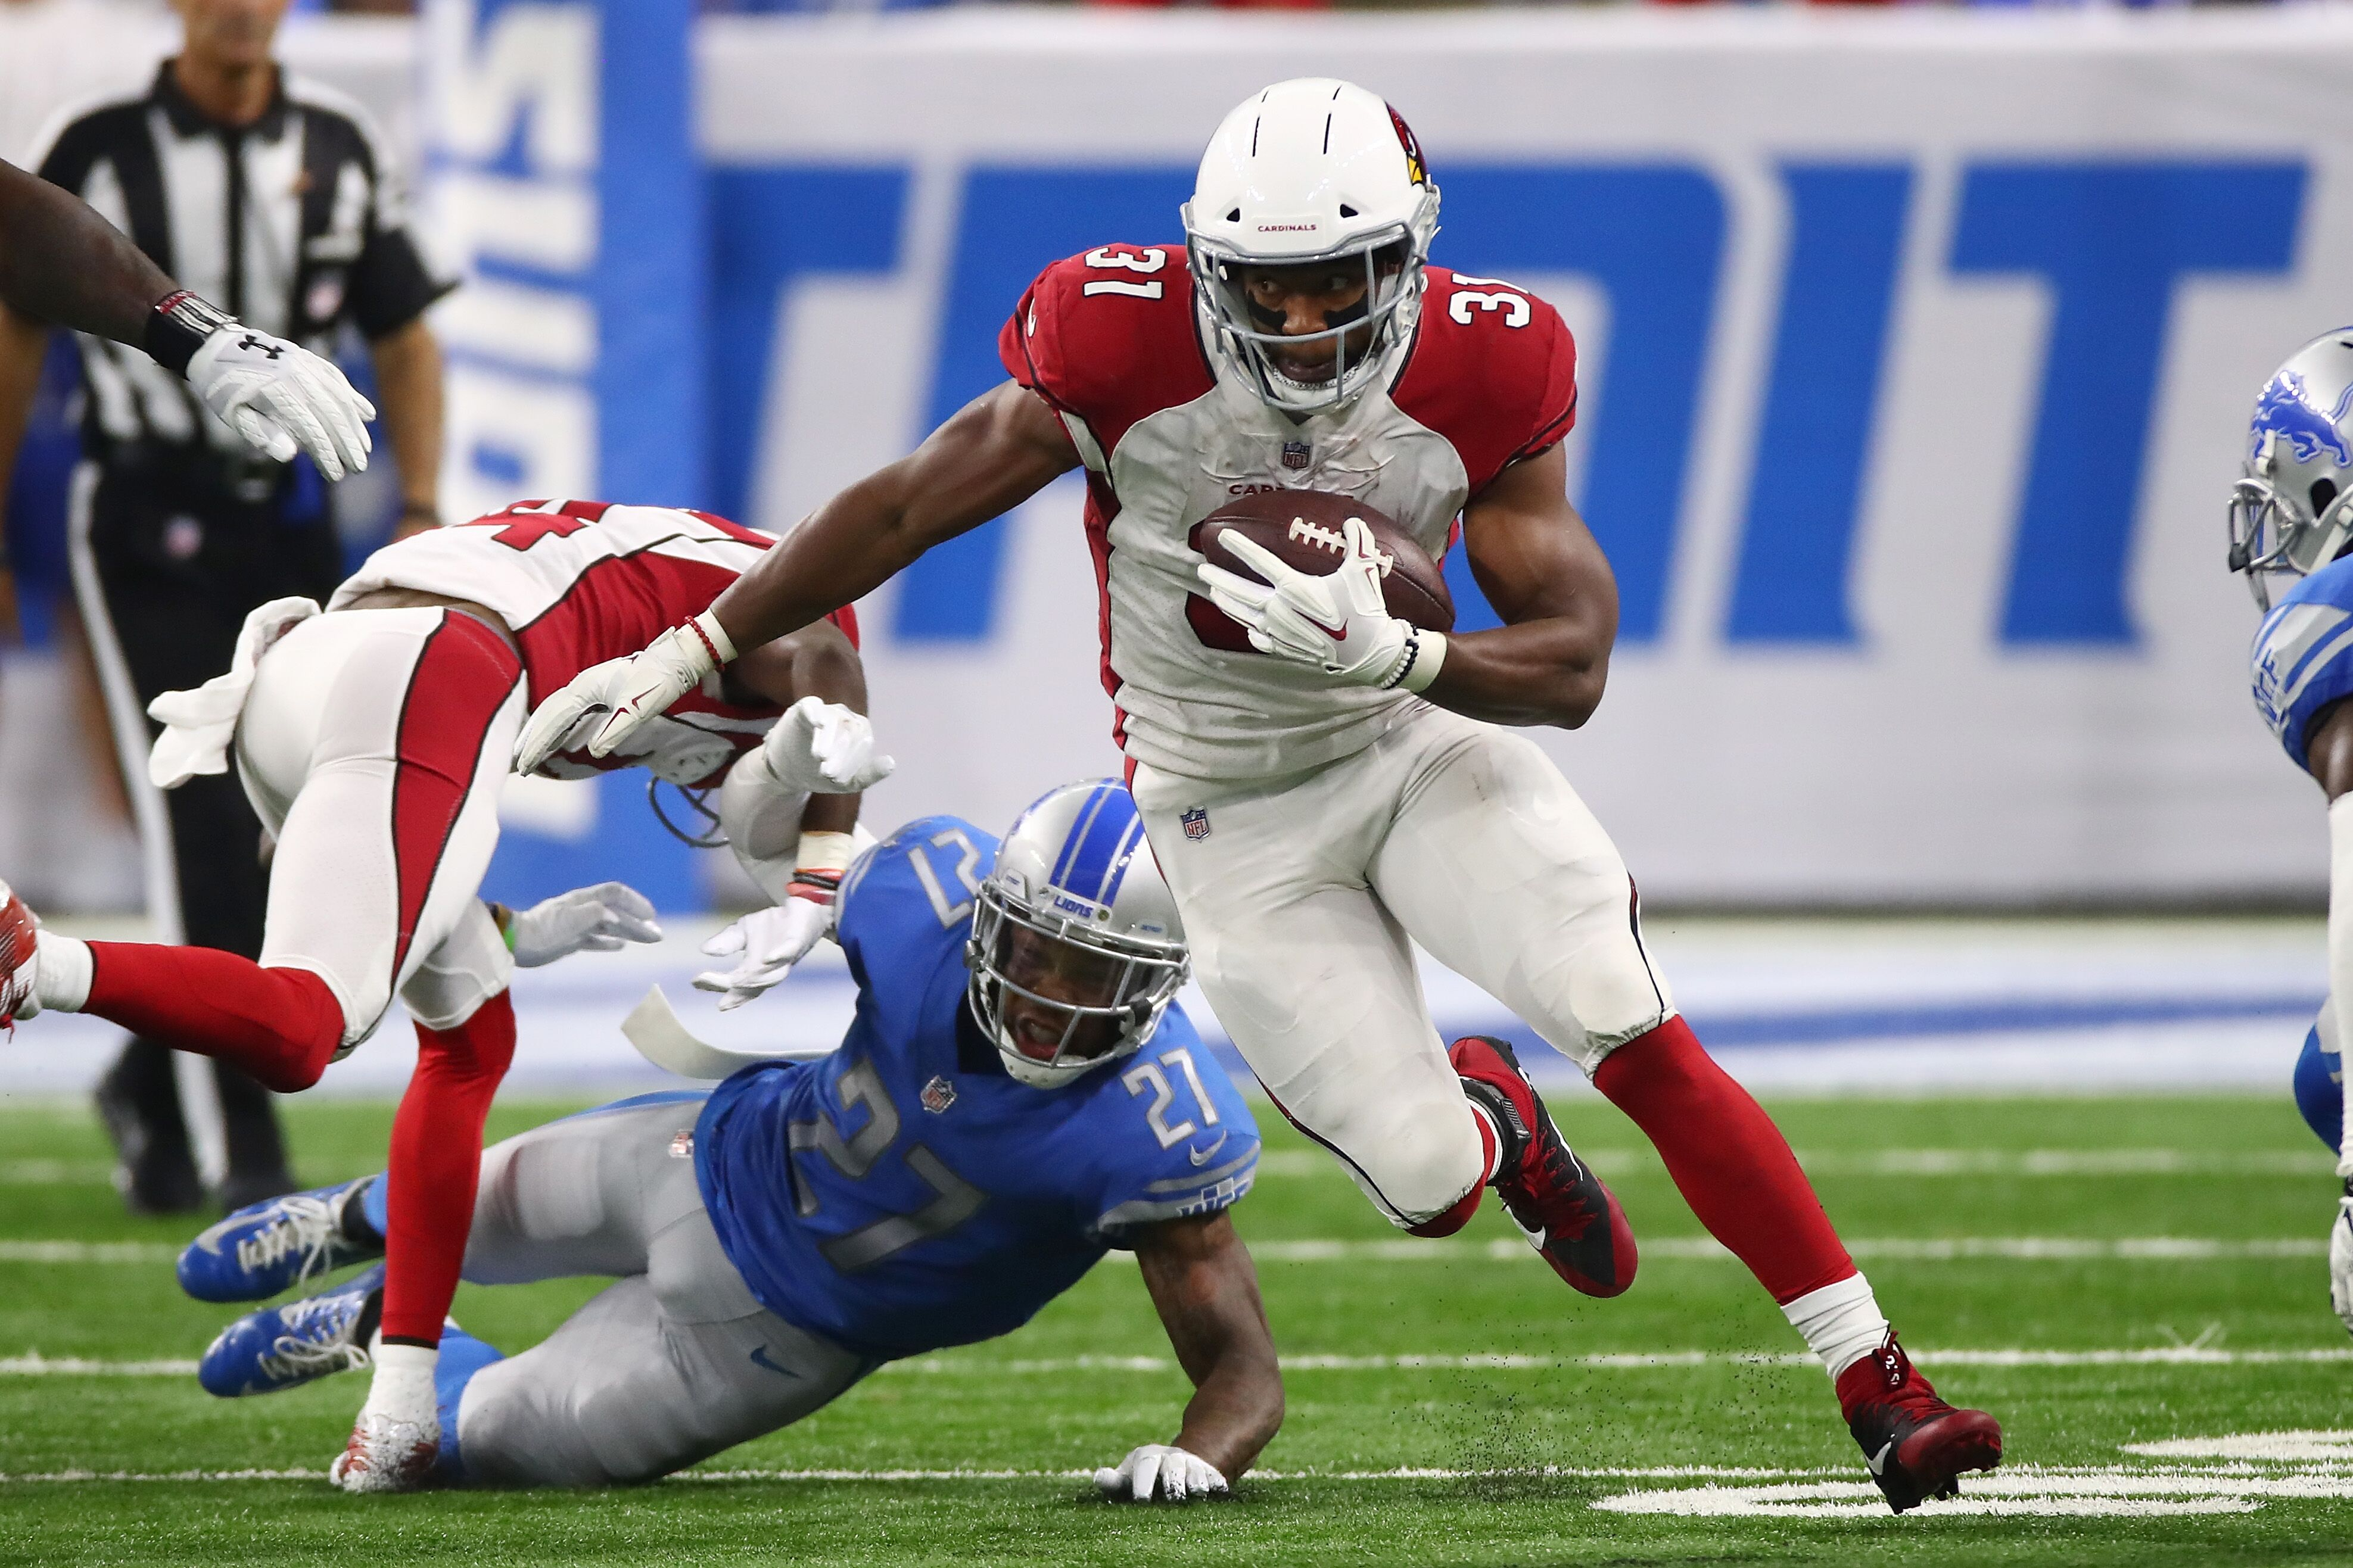 848435186-arizona-cardinals-v-detroit-lions.jpg